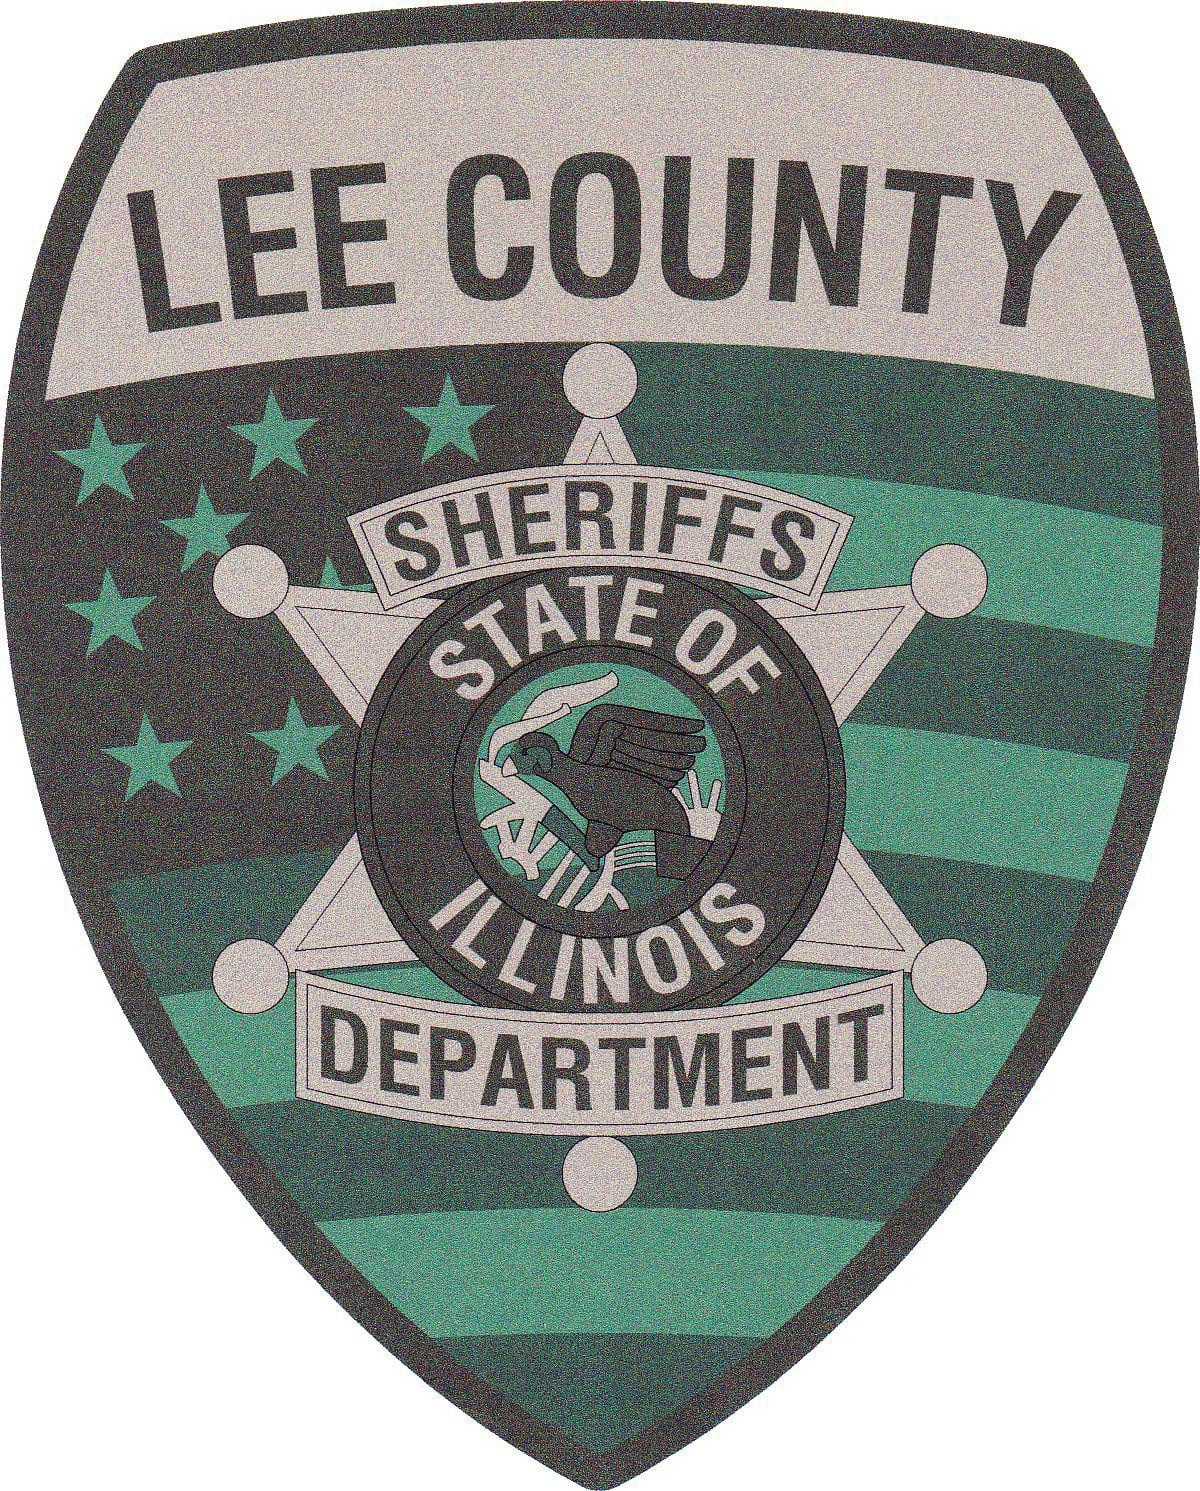 Illinois lee county lee - Lee County Sheriffs Department